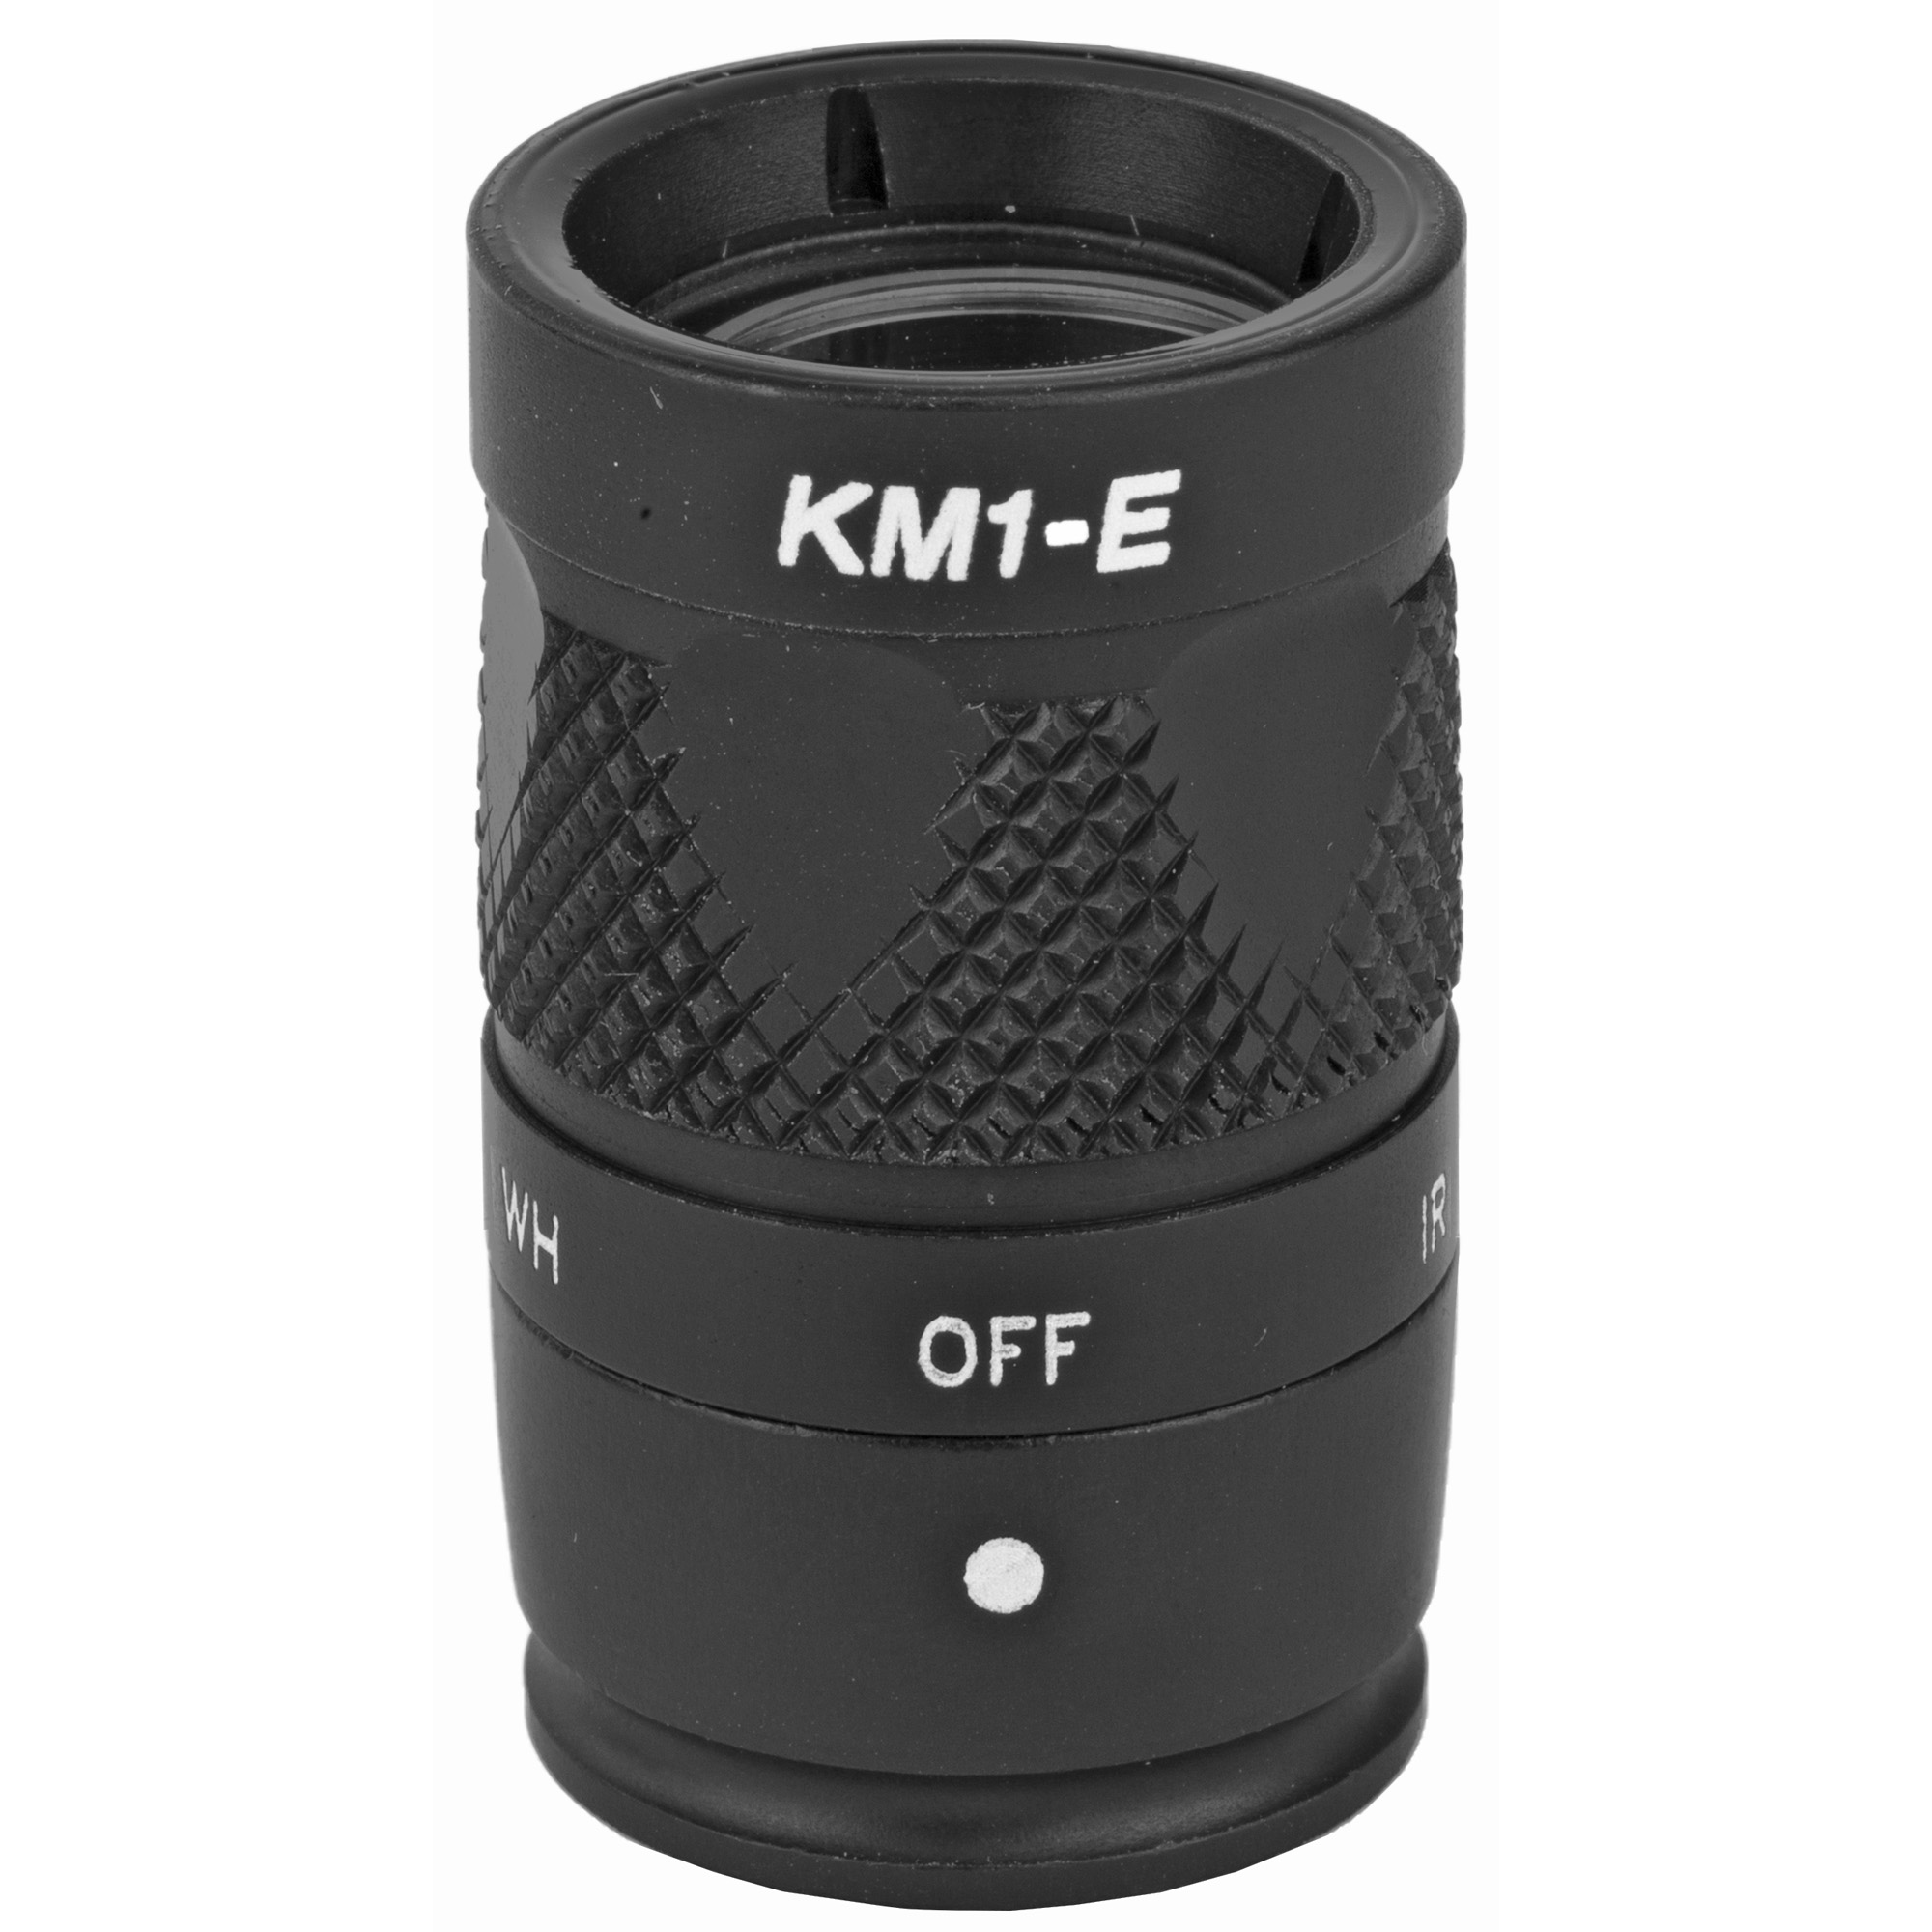 """The KM1 bezel assembly provides both white light and infrared illumination from a single 123A battery when used on an M300 Scout Light(R). Select the appropriate spectrum for the mission by simply rotating the bezel. This small"""" rugged Weapon Light features SureFire's proprietary TIR lens"""" a far-reaching"""" high-intensity beam with ample surround light. Constructed of lightweight aerospace aluminum coated with a Mil-Spec Hard Anodized finish"""" the ultra-compact KM1 will withstand the rigors of combat without weighing down your weapon. Upgrade your Mini Scout Light(R) to 250 lumens and 100 mW of infrared illumination with the KM1."""